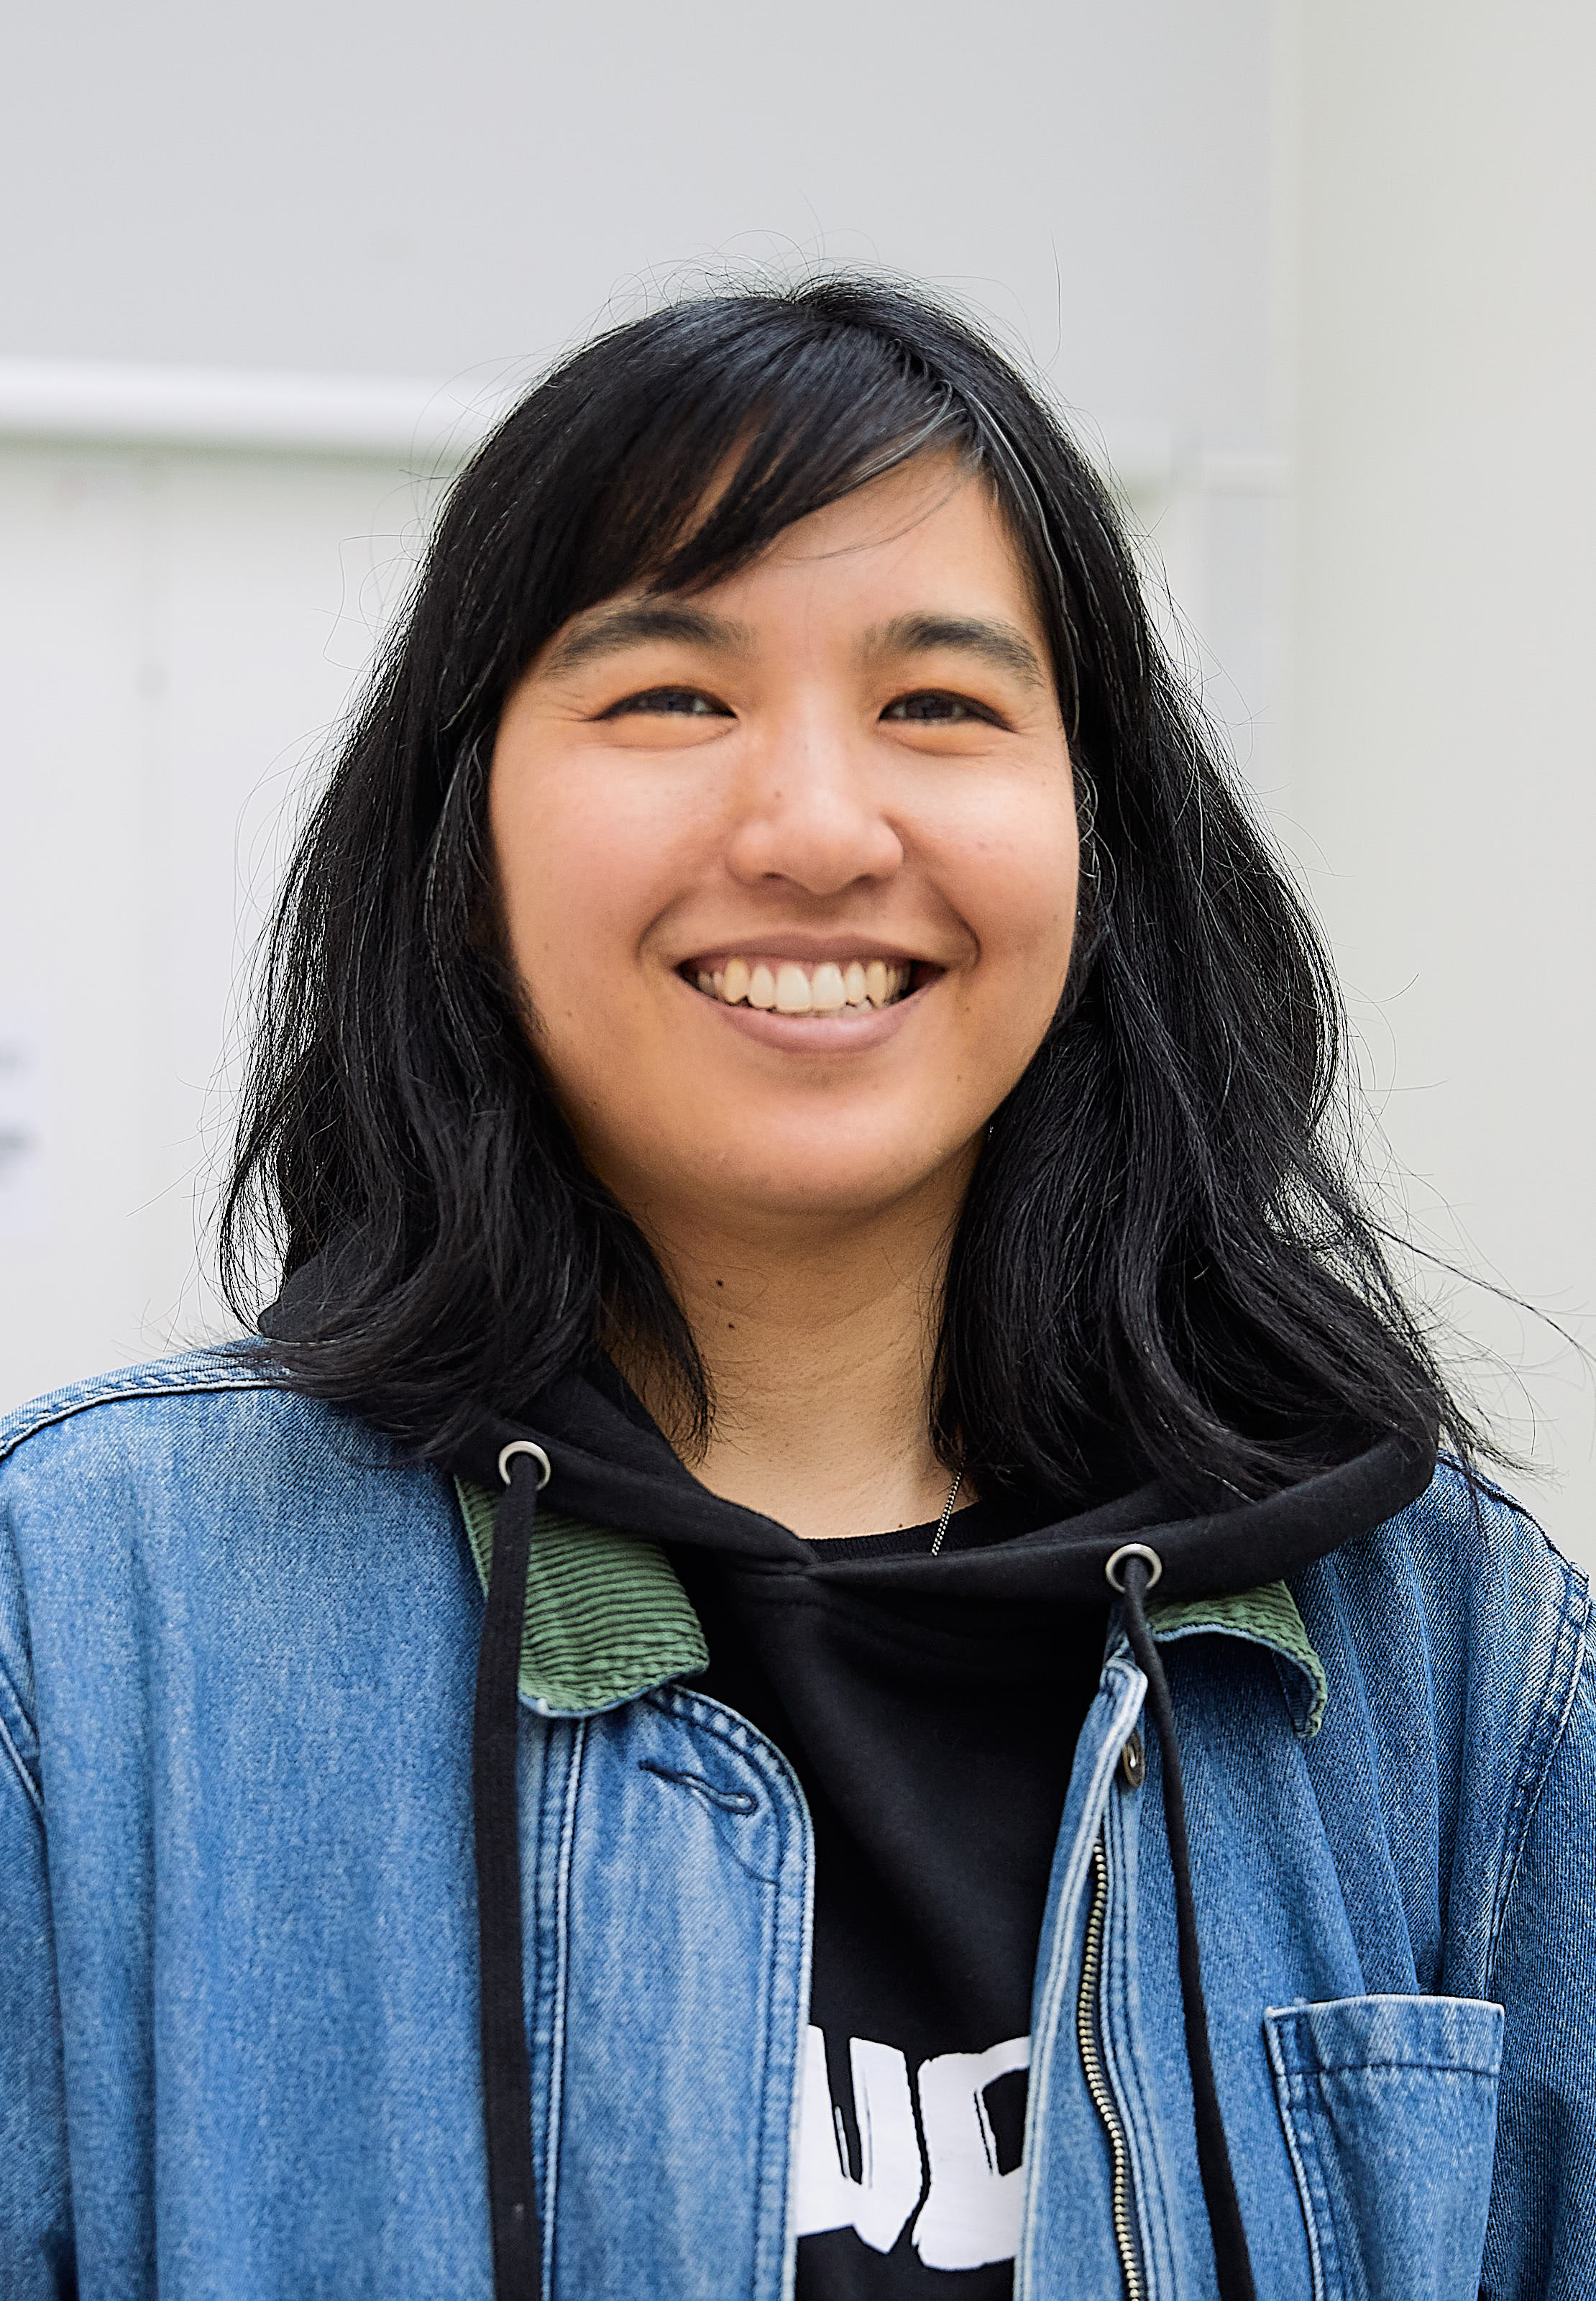 Jillian Tamaki at the 2019 Stockholm international comics festival.